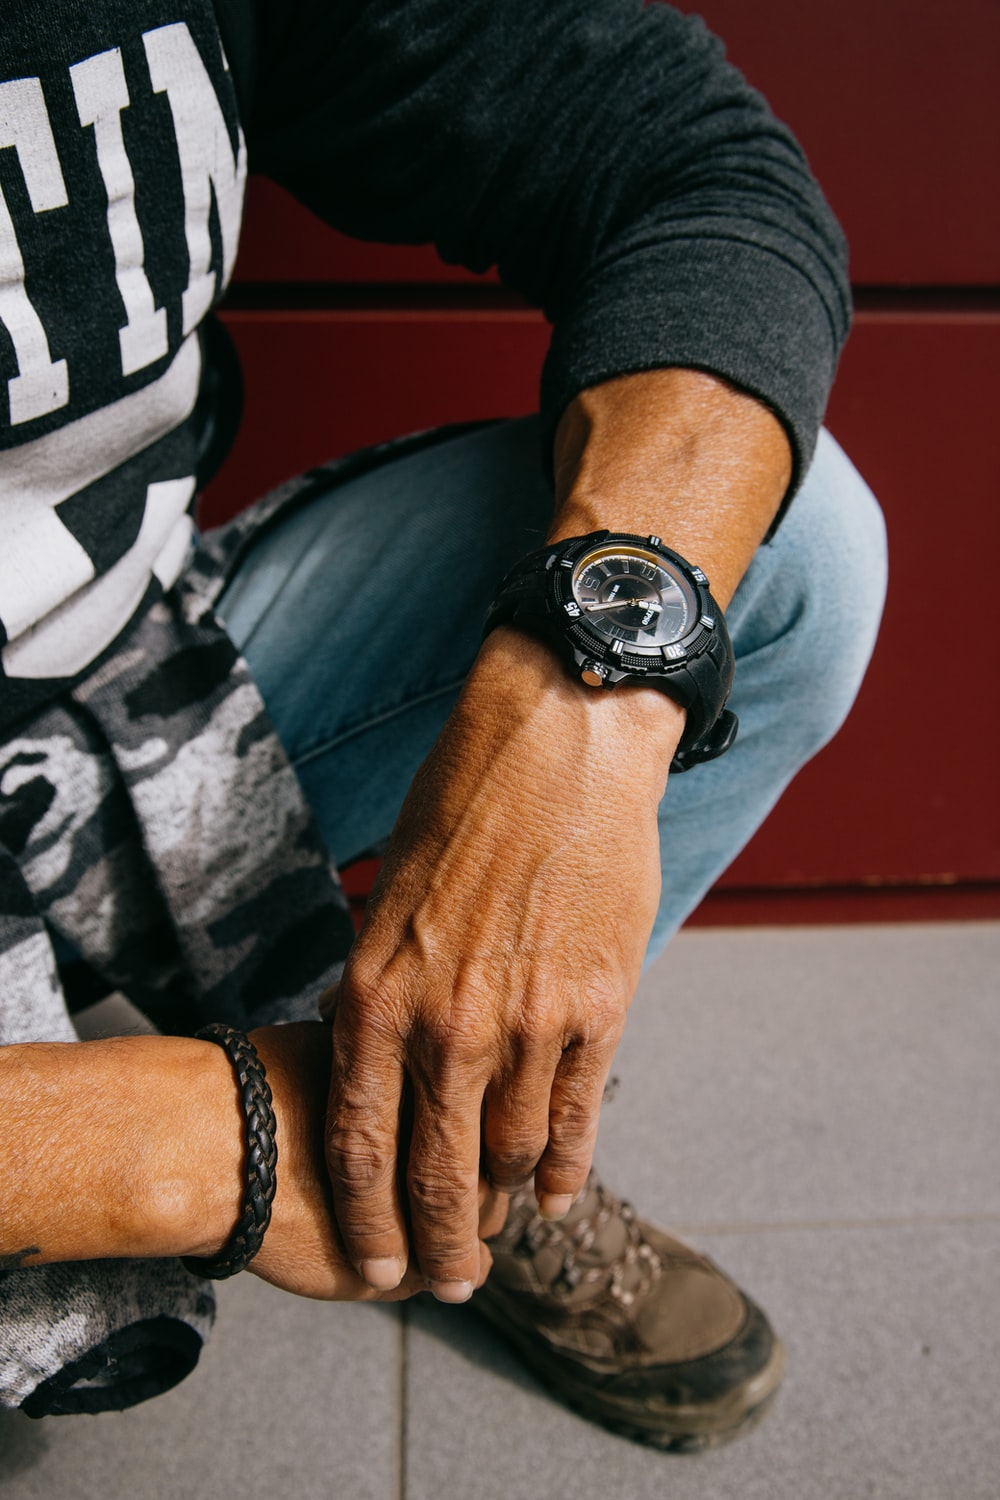 person wearing black and silver round analog watch